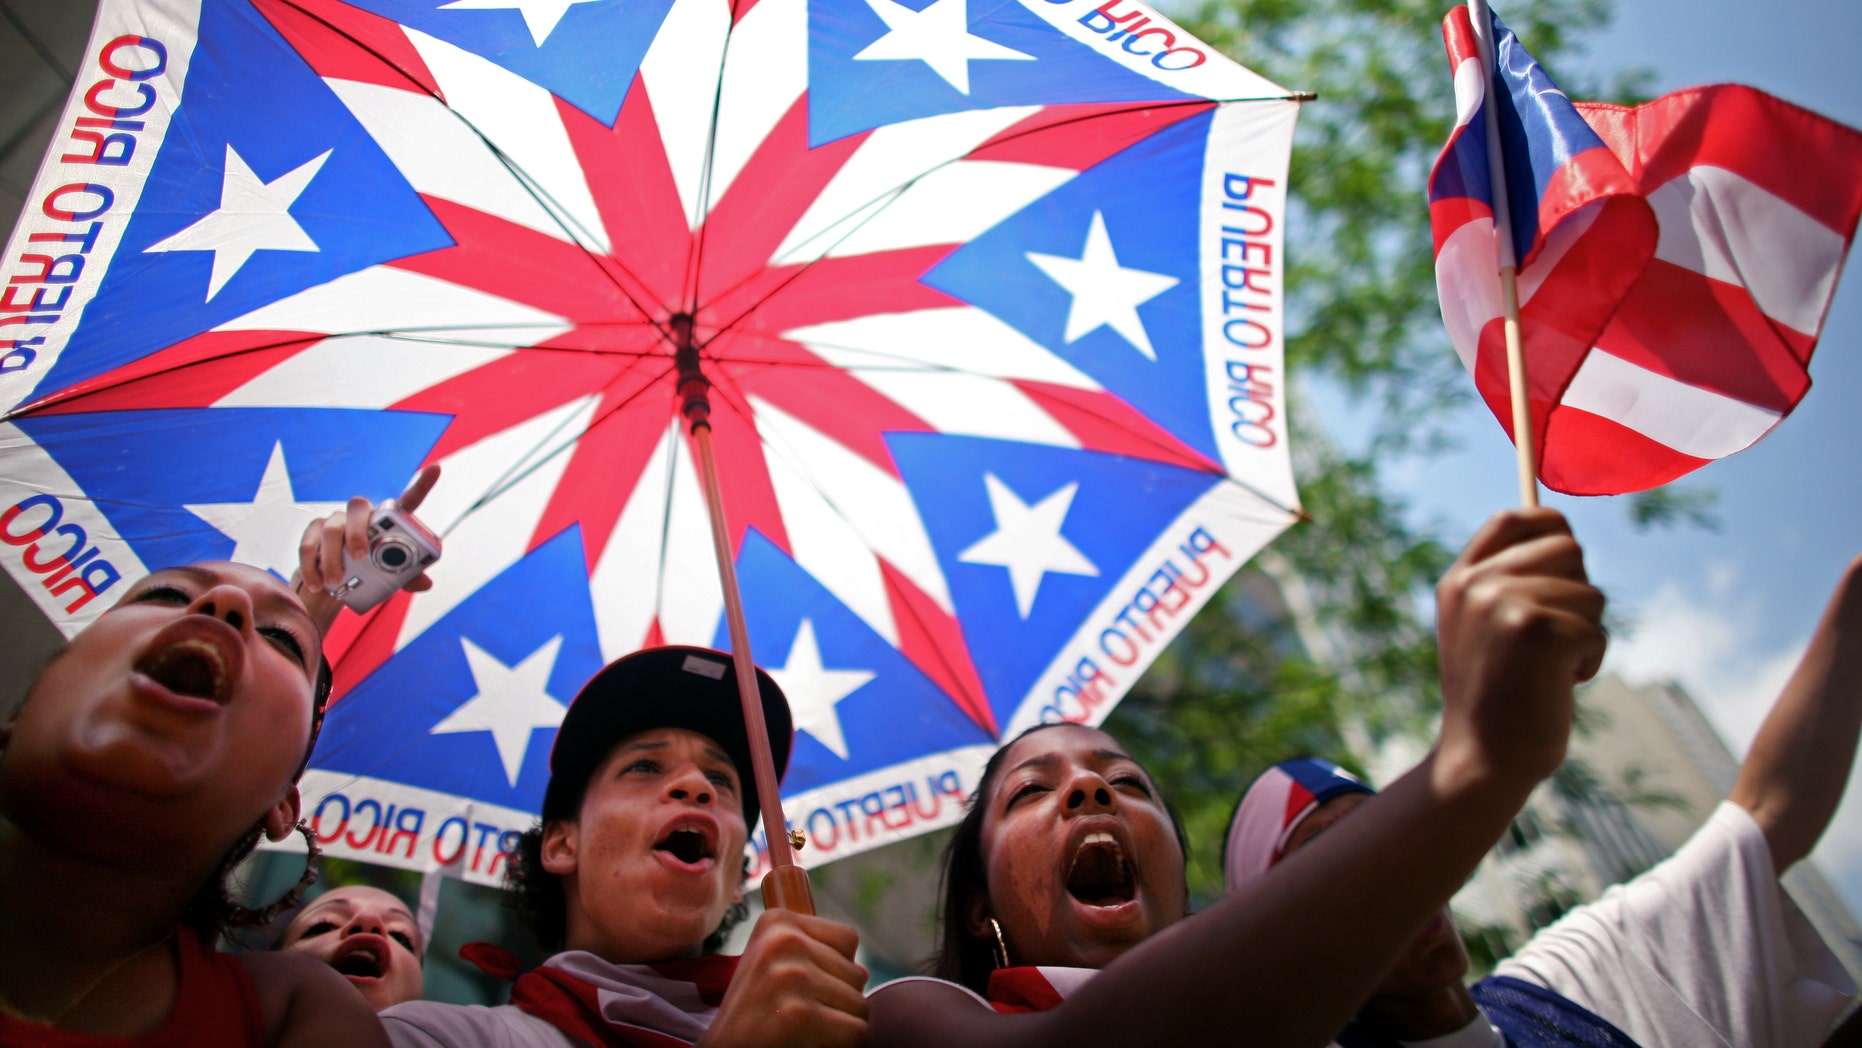 NEW YORK CITY - JUNE 8:   (L-R) Stephanie Morales, Christian Ortiz and Simone Sonii cheer at the annual Puerto Rico Day Parade June 8, 2008 in New York City. The parade honoring Puerto Ricans is an annual New York City tradition and takes place along Fifth Avenue.  (Photo by Yana Paskova/Getty Images)